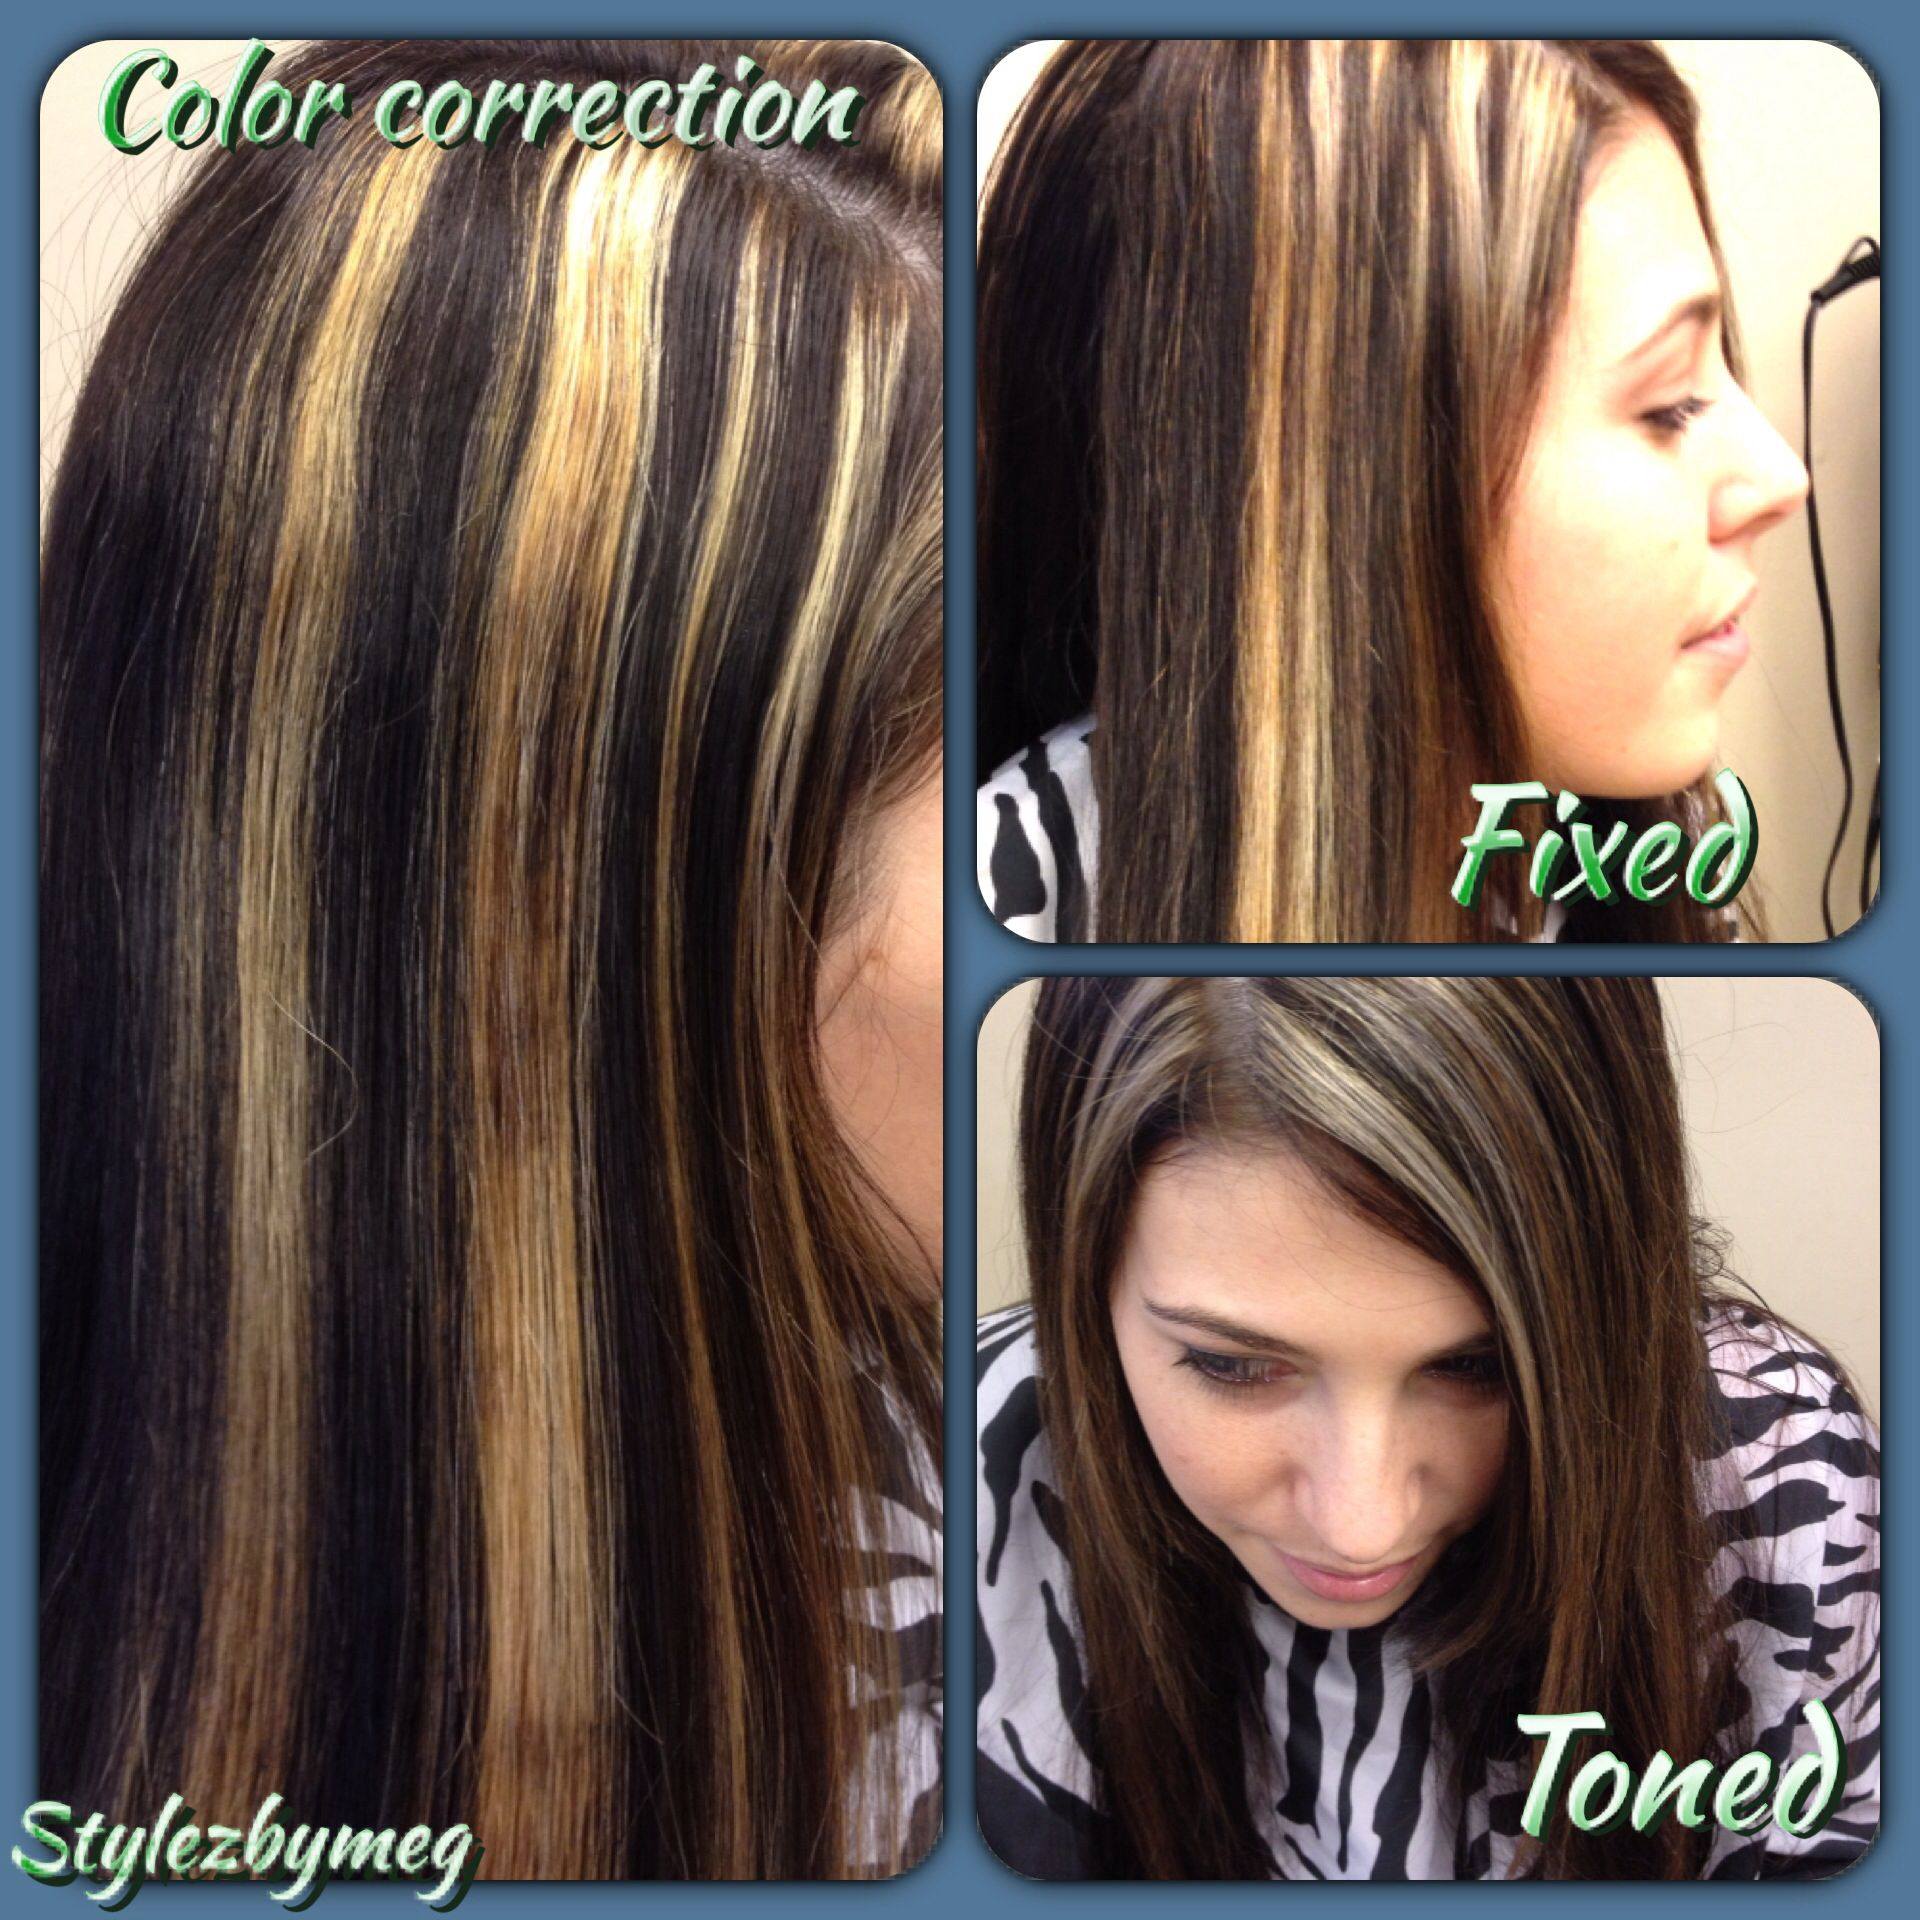 Color correction ladies if youre getting highlights